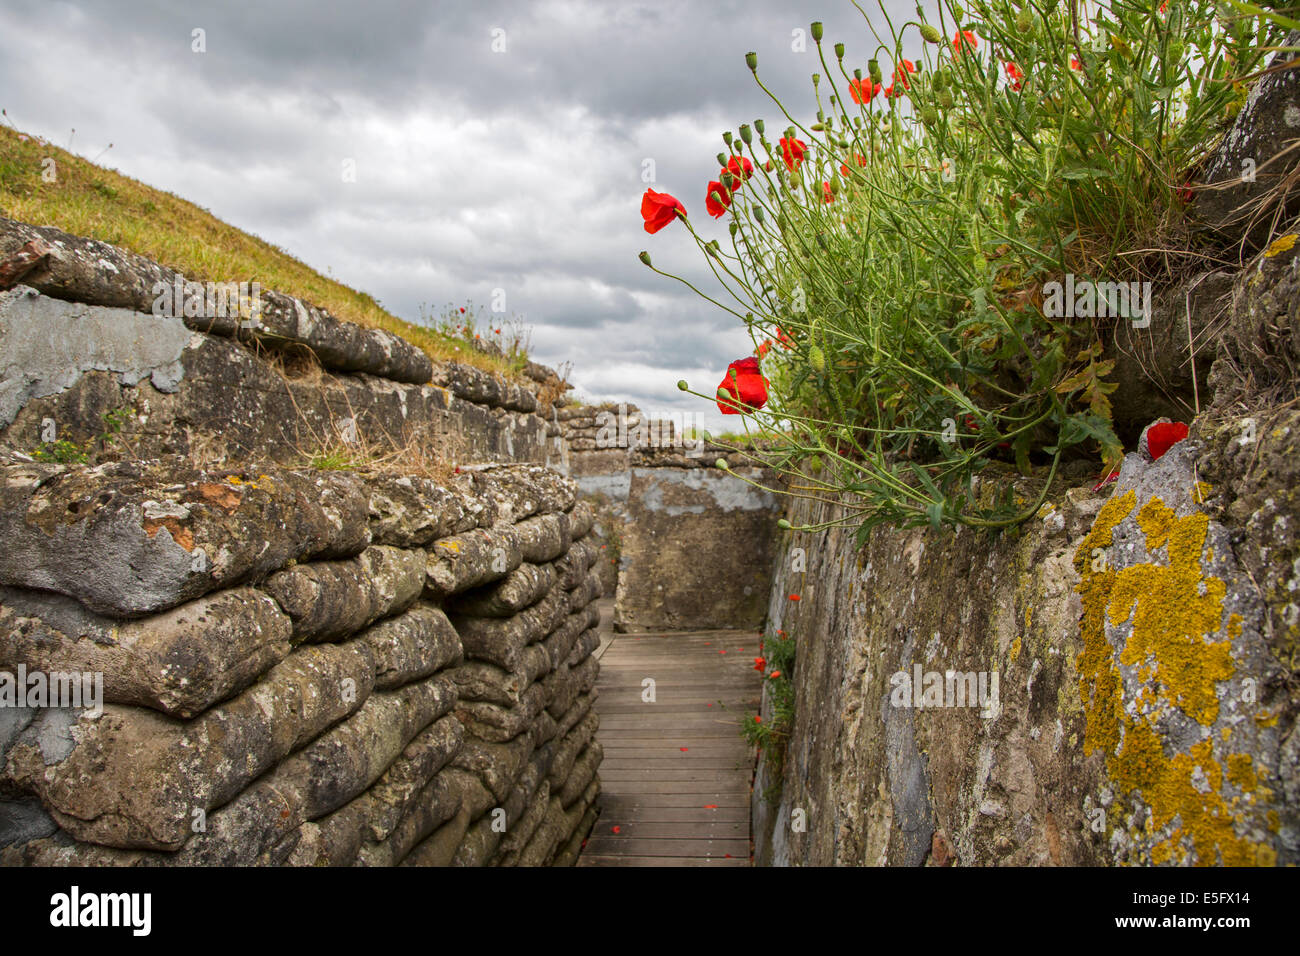 Poppies growing on sandbags at the Dodengang / Boyau de la Mort / Trench of Death, World War One trenches, Diksmuide, - Stock Image